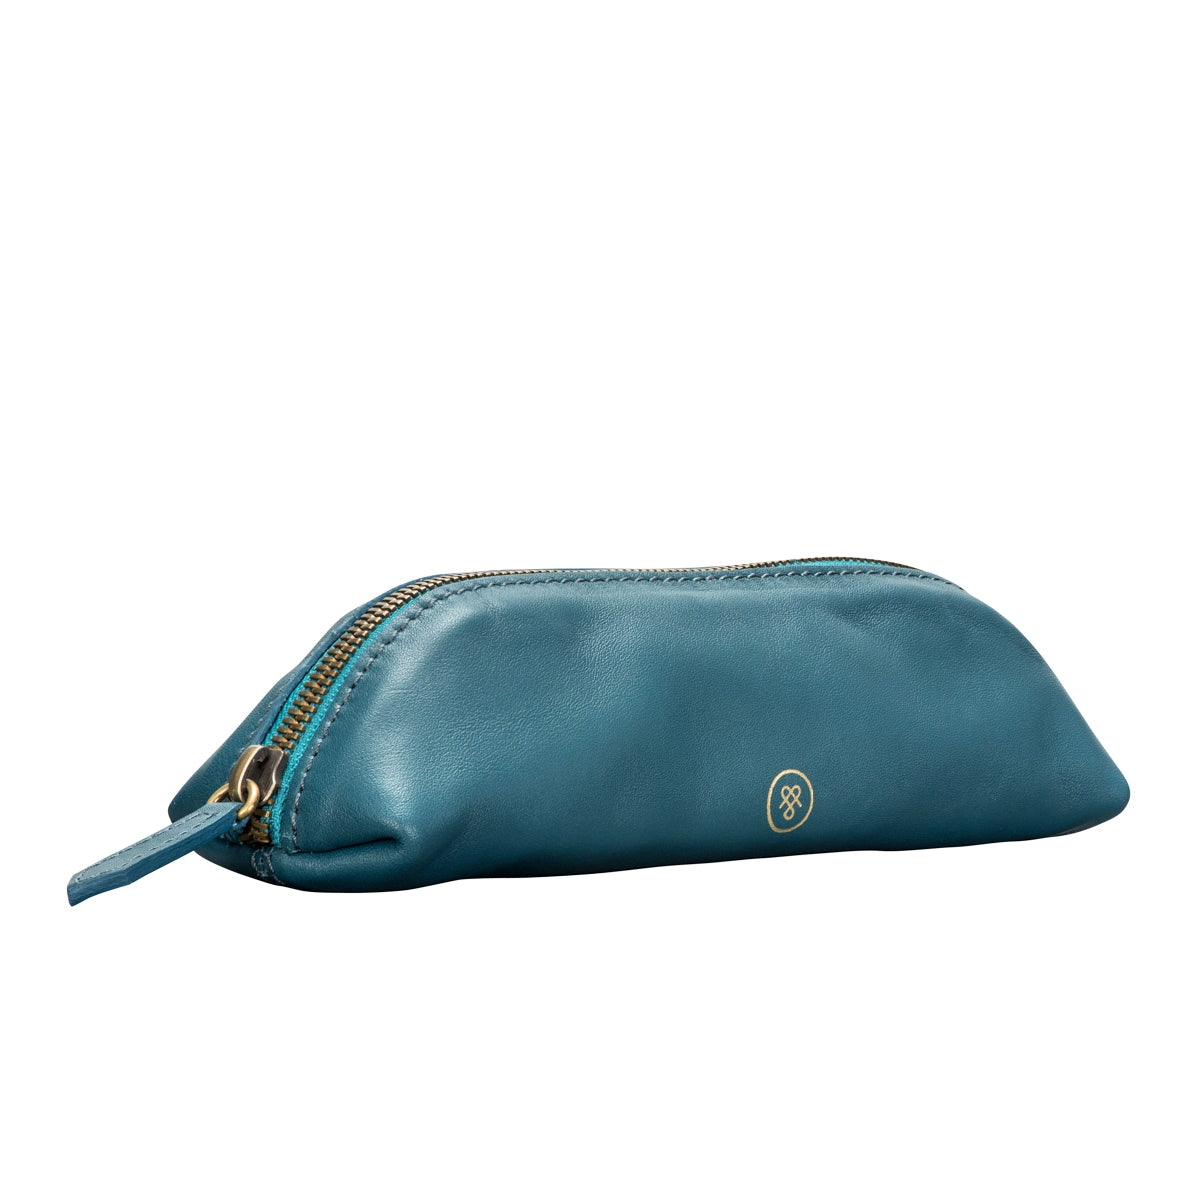 Image 4 of the 'Felice' Leather Pencil Case